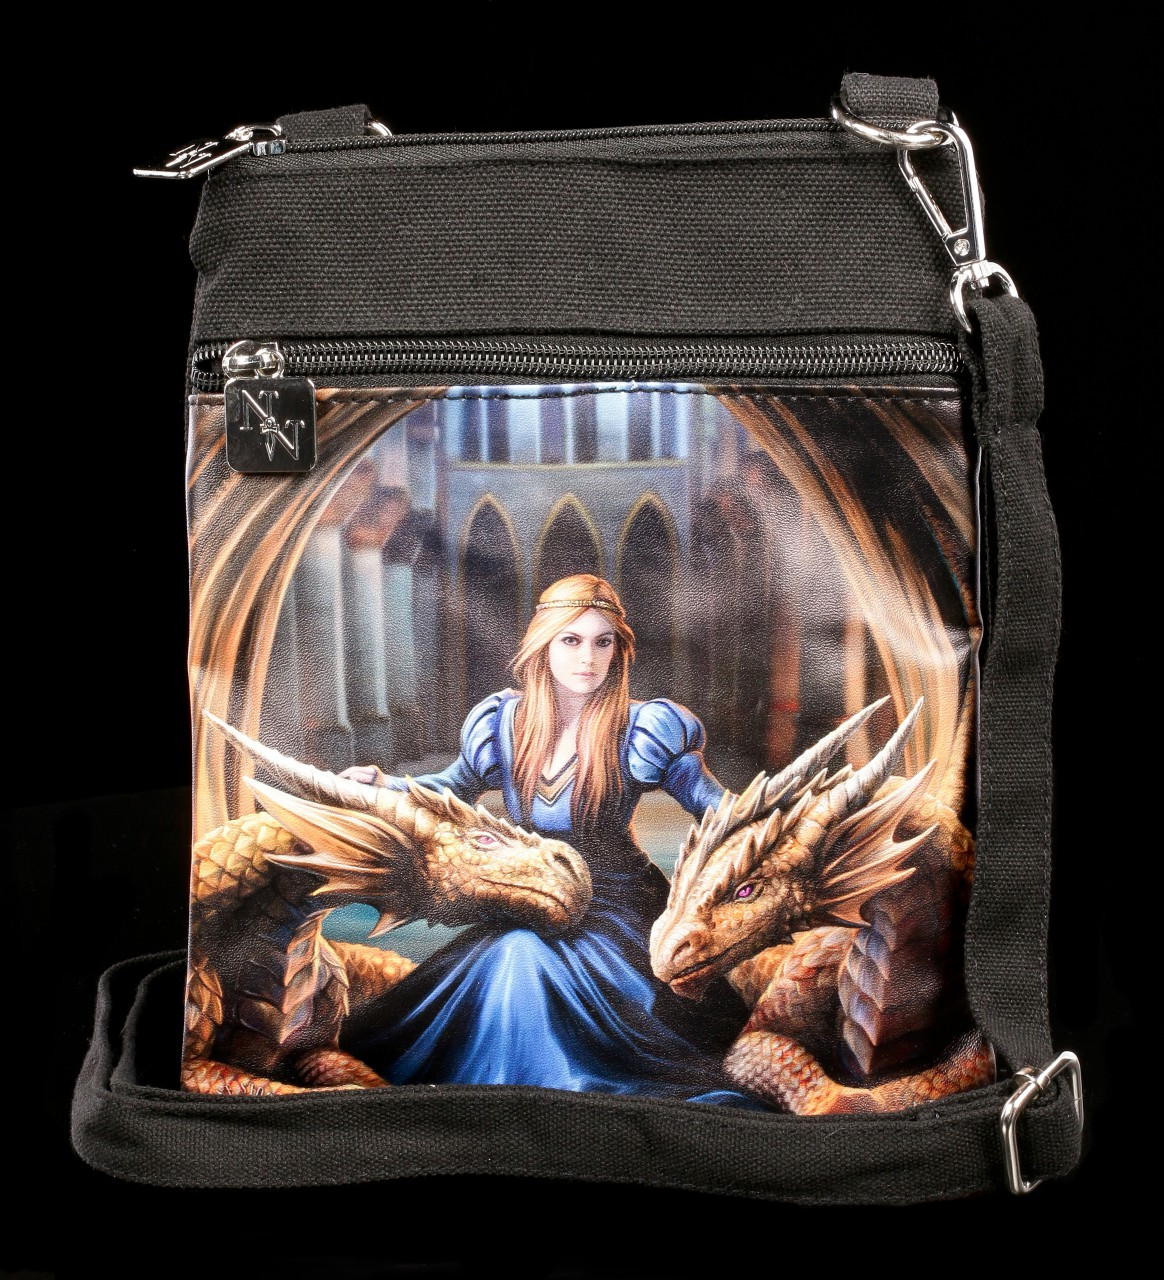 Small Shoulder Bag with Dragons - Fierce Loyalty